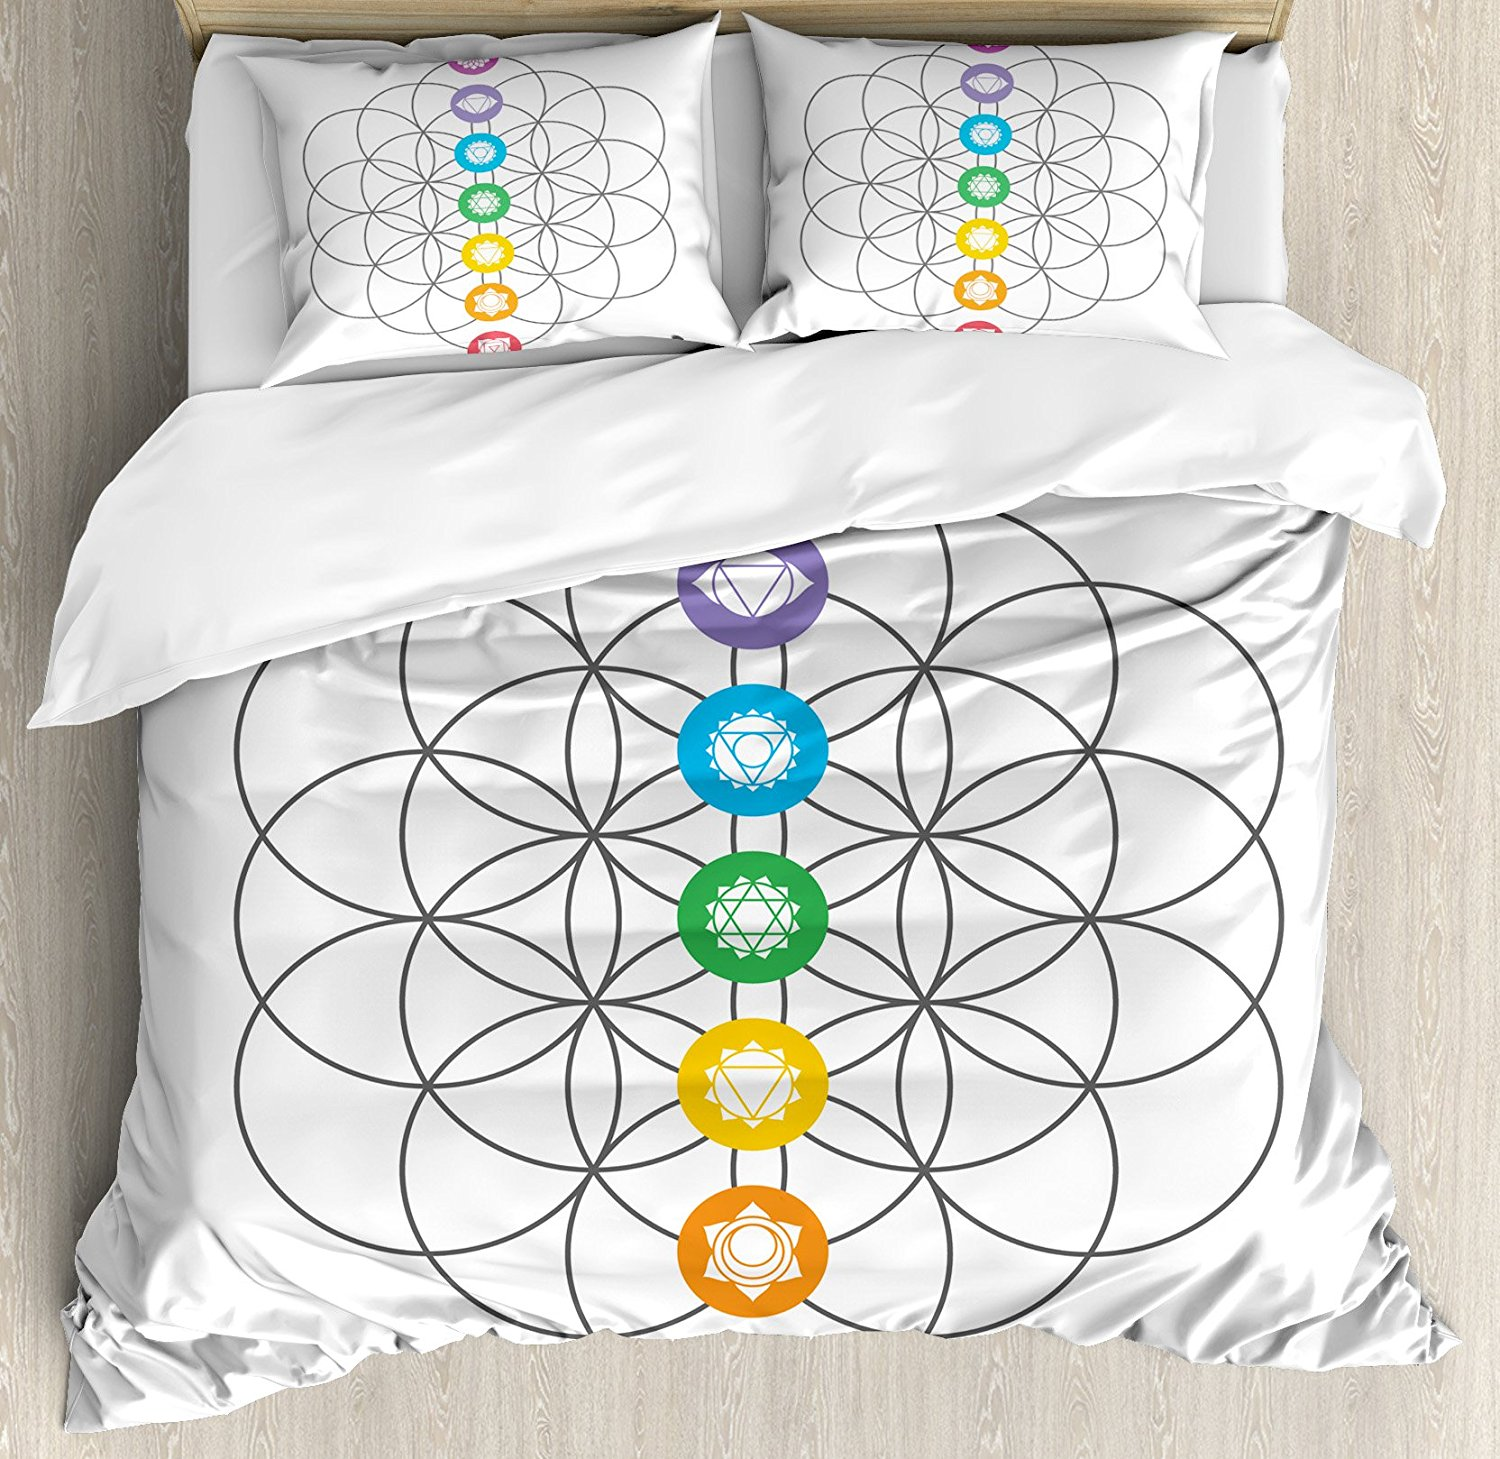 Sacred Geometry Duvet Cover Set Chakra Points in Vintage Concentric Rings of Partial Circle Zen Theme Image Bedding Set